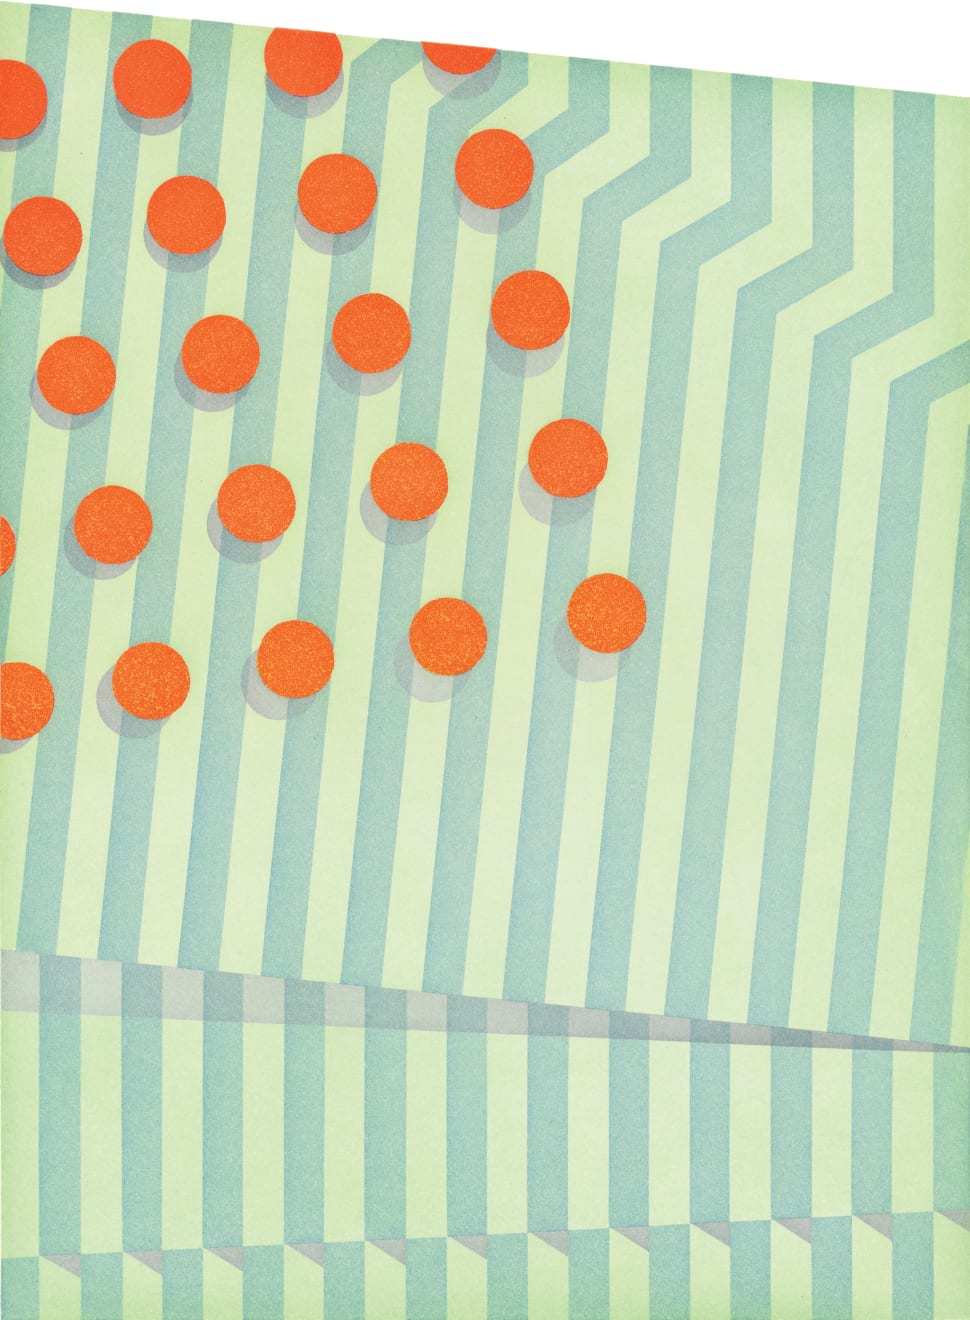 Tomma Abts, Untitled (small circles), 2015